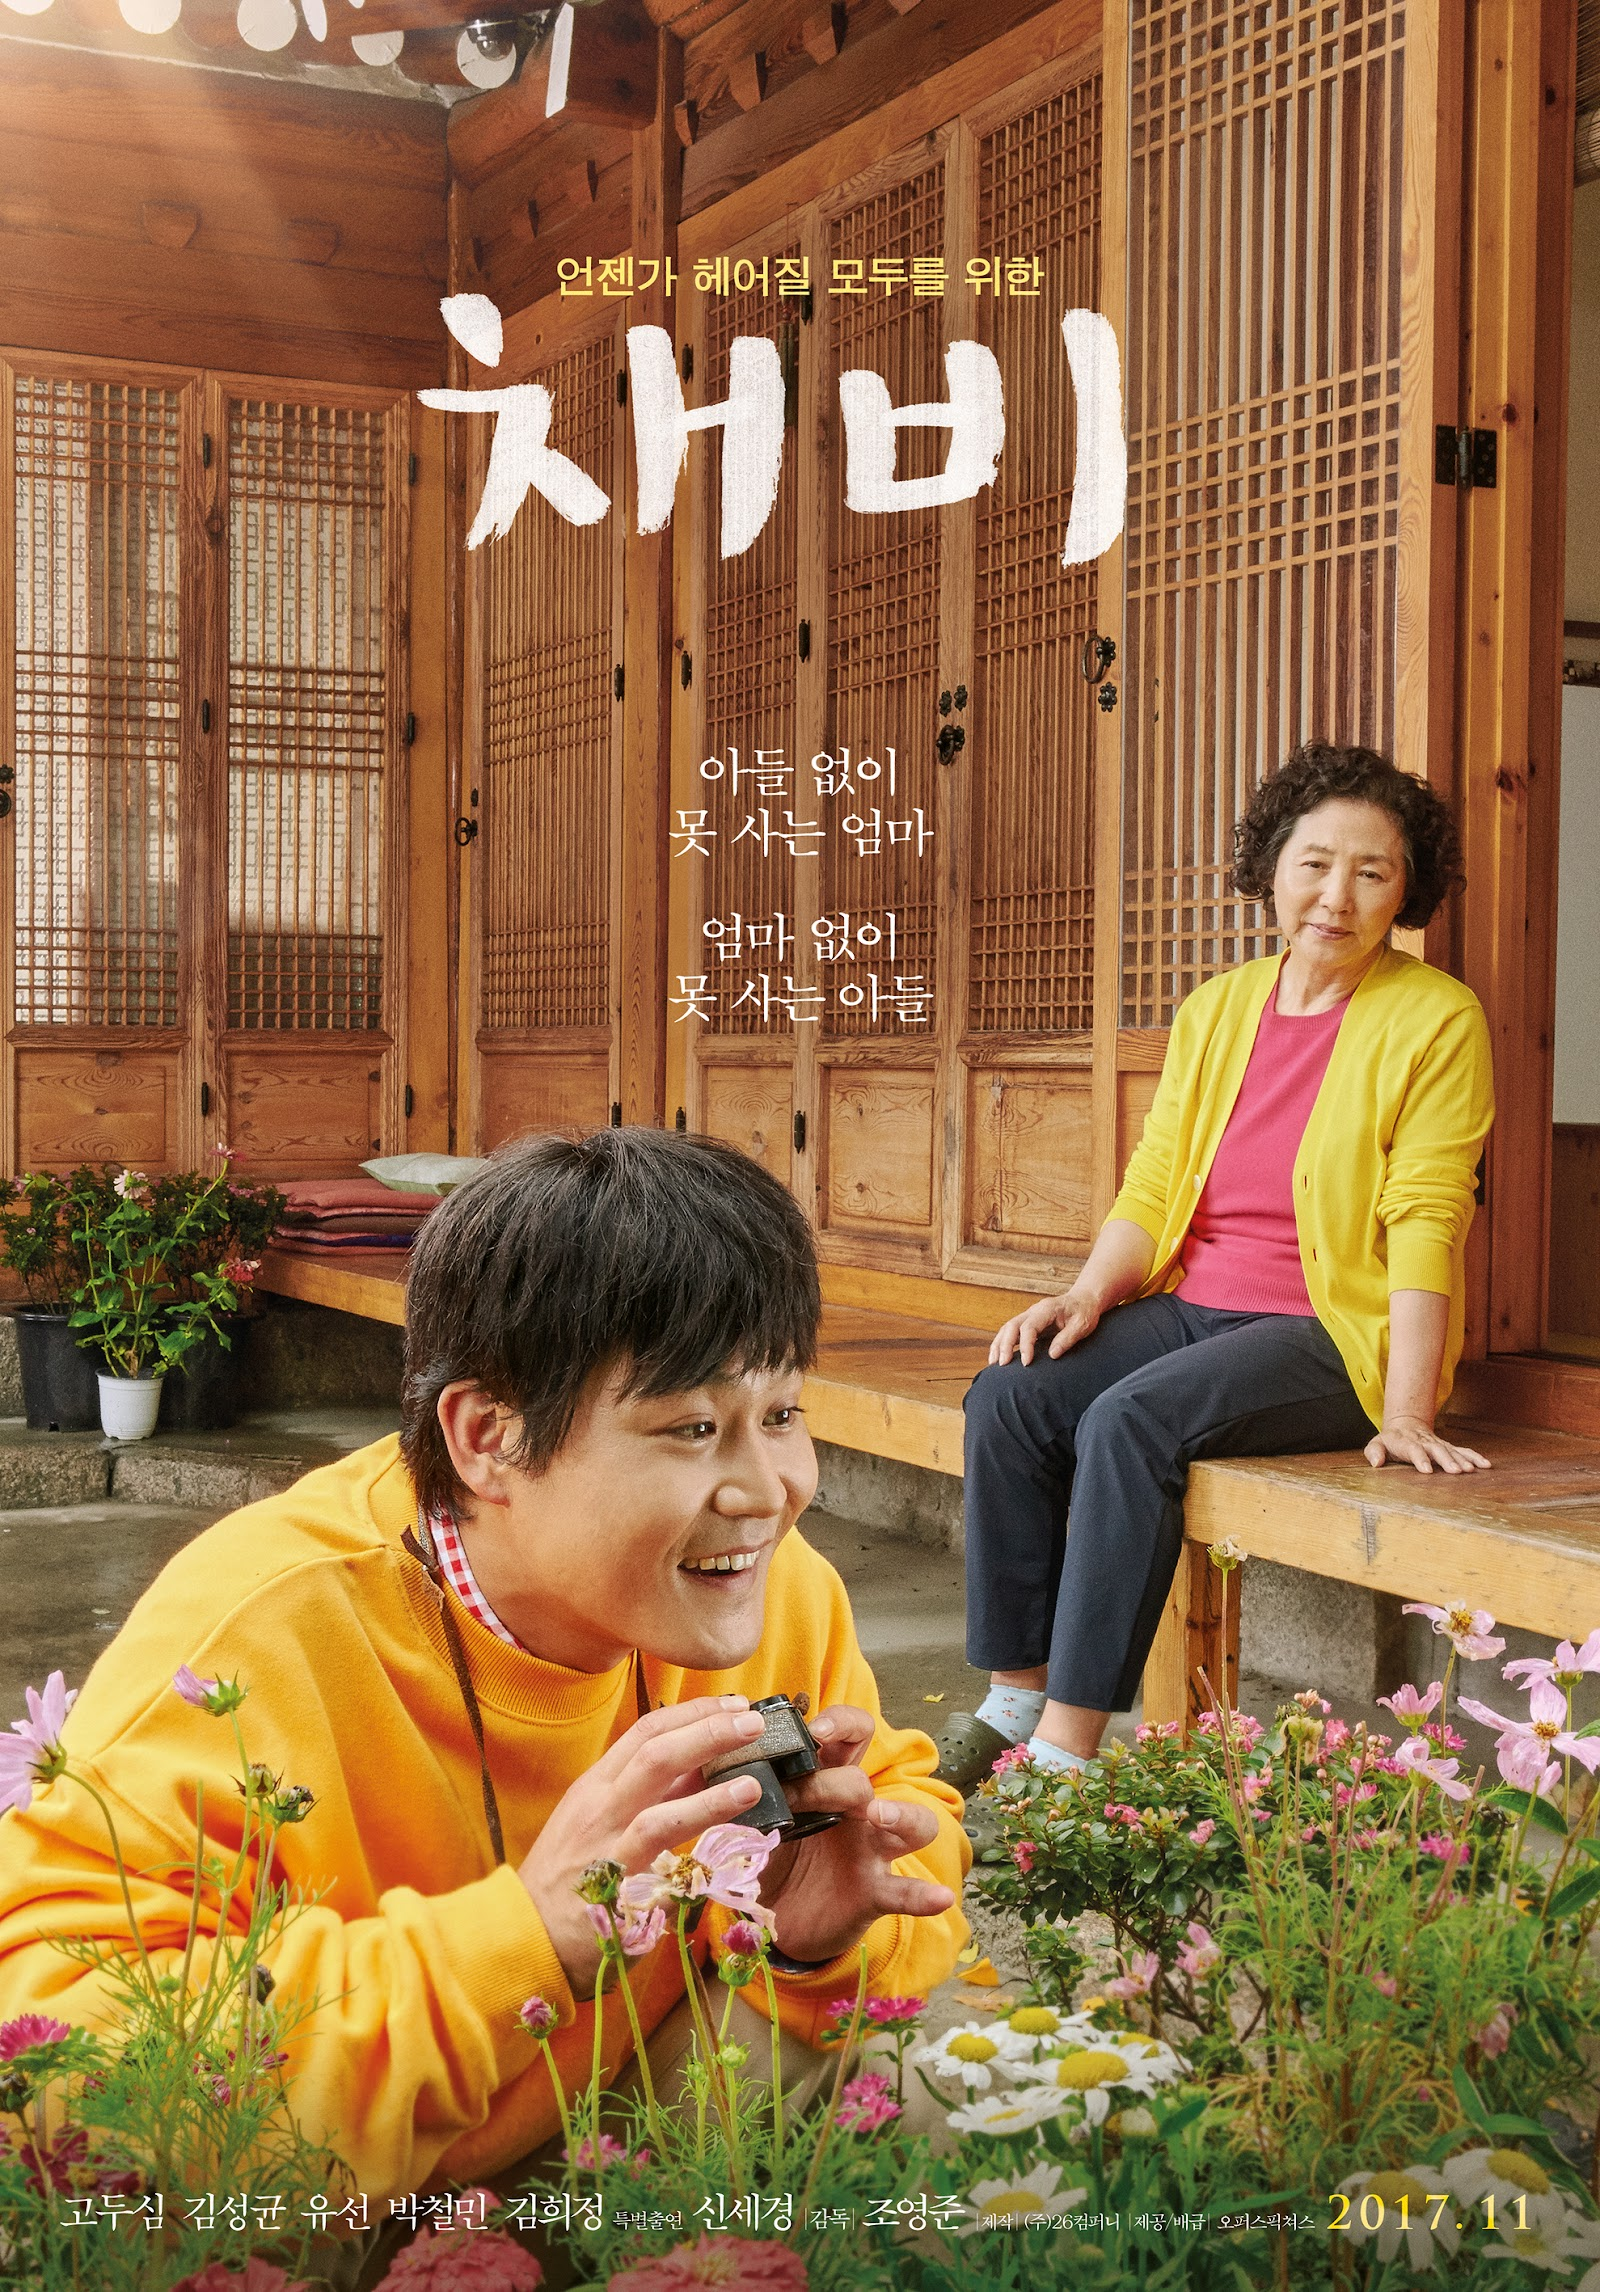 This korean movie is rumoured to be the saddest film you will ever its a story about a fatally ill mother who prepares her 30 year old son with an intellectual disability on how to live on without her mightylinksfo